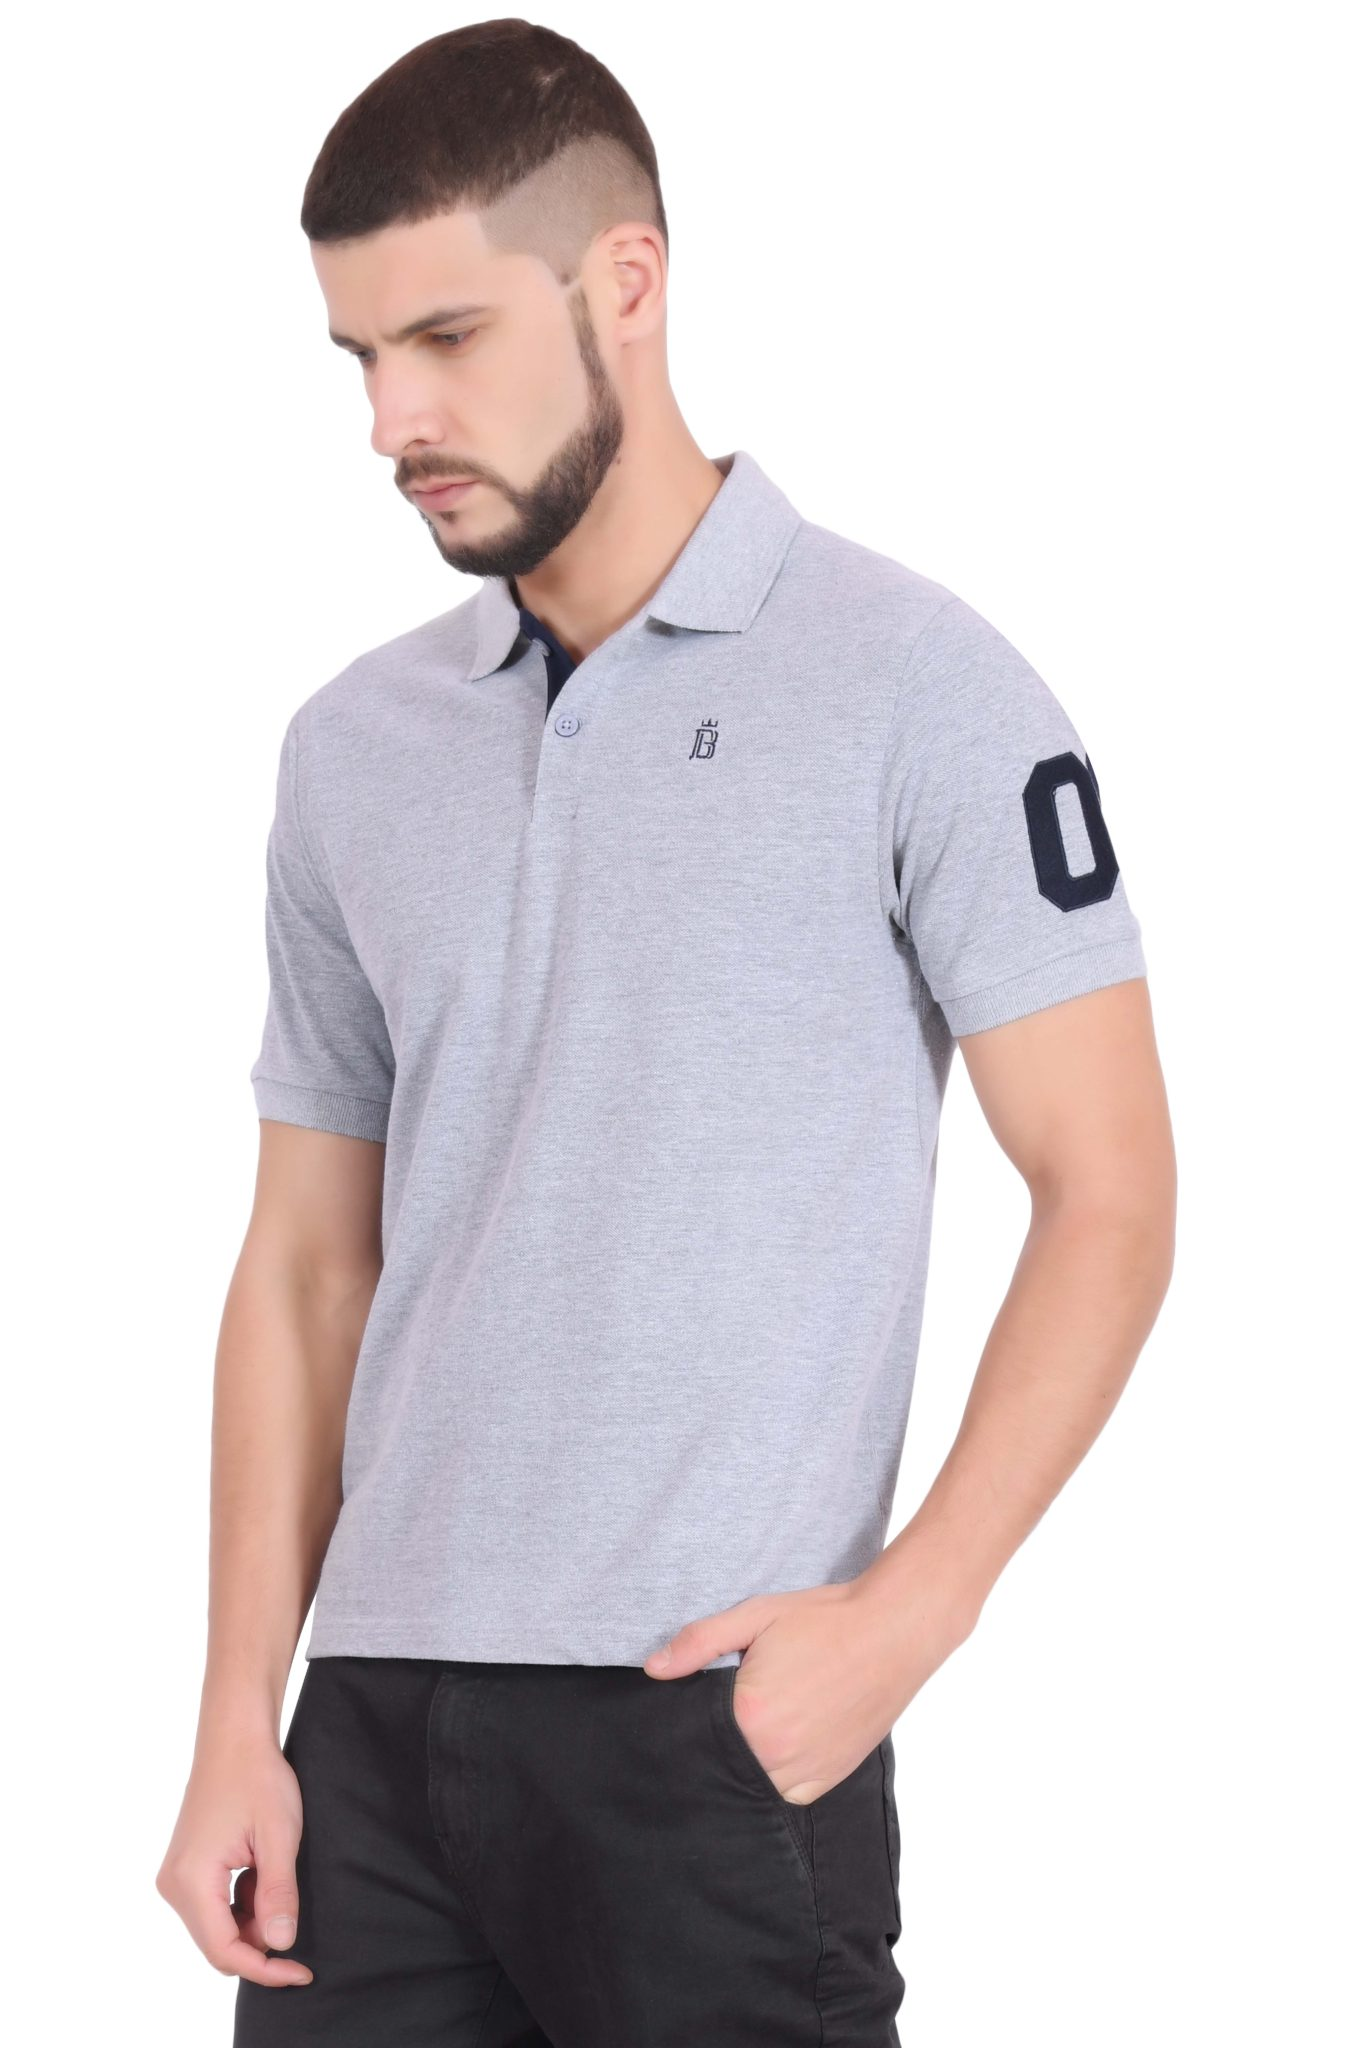 mens striped polo t shirt,Quality T Shirt Clearance! |Polo T Shirts For Men 2013